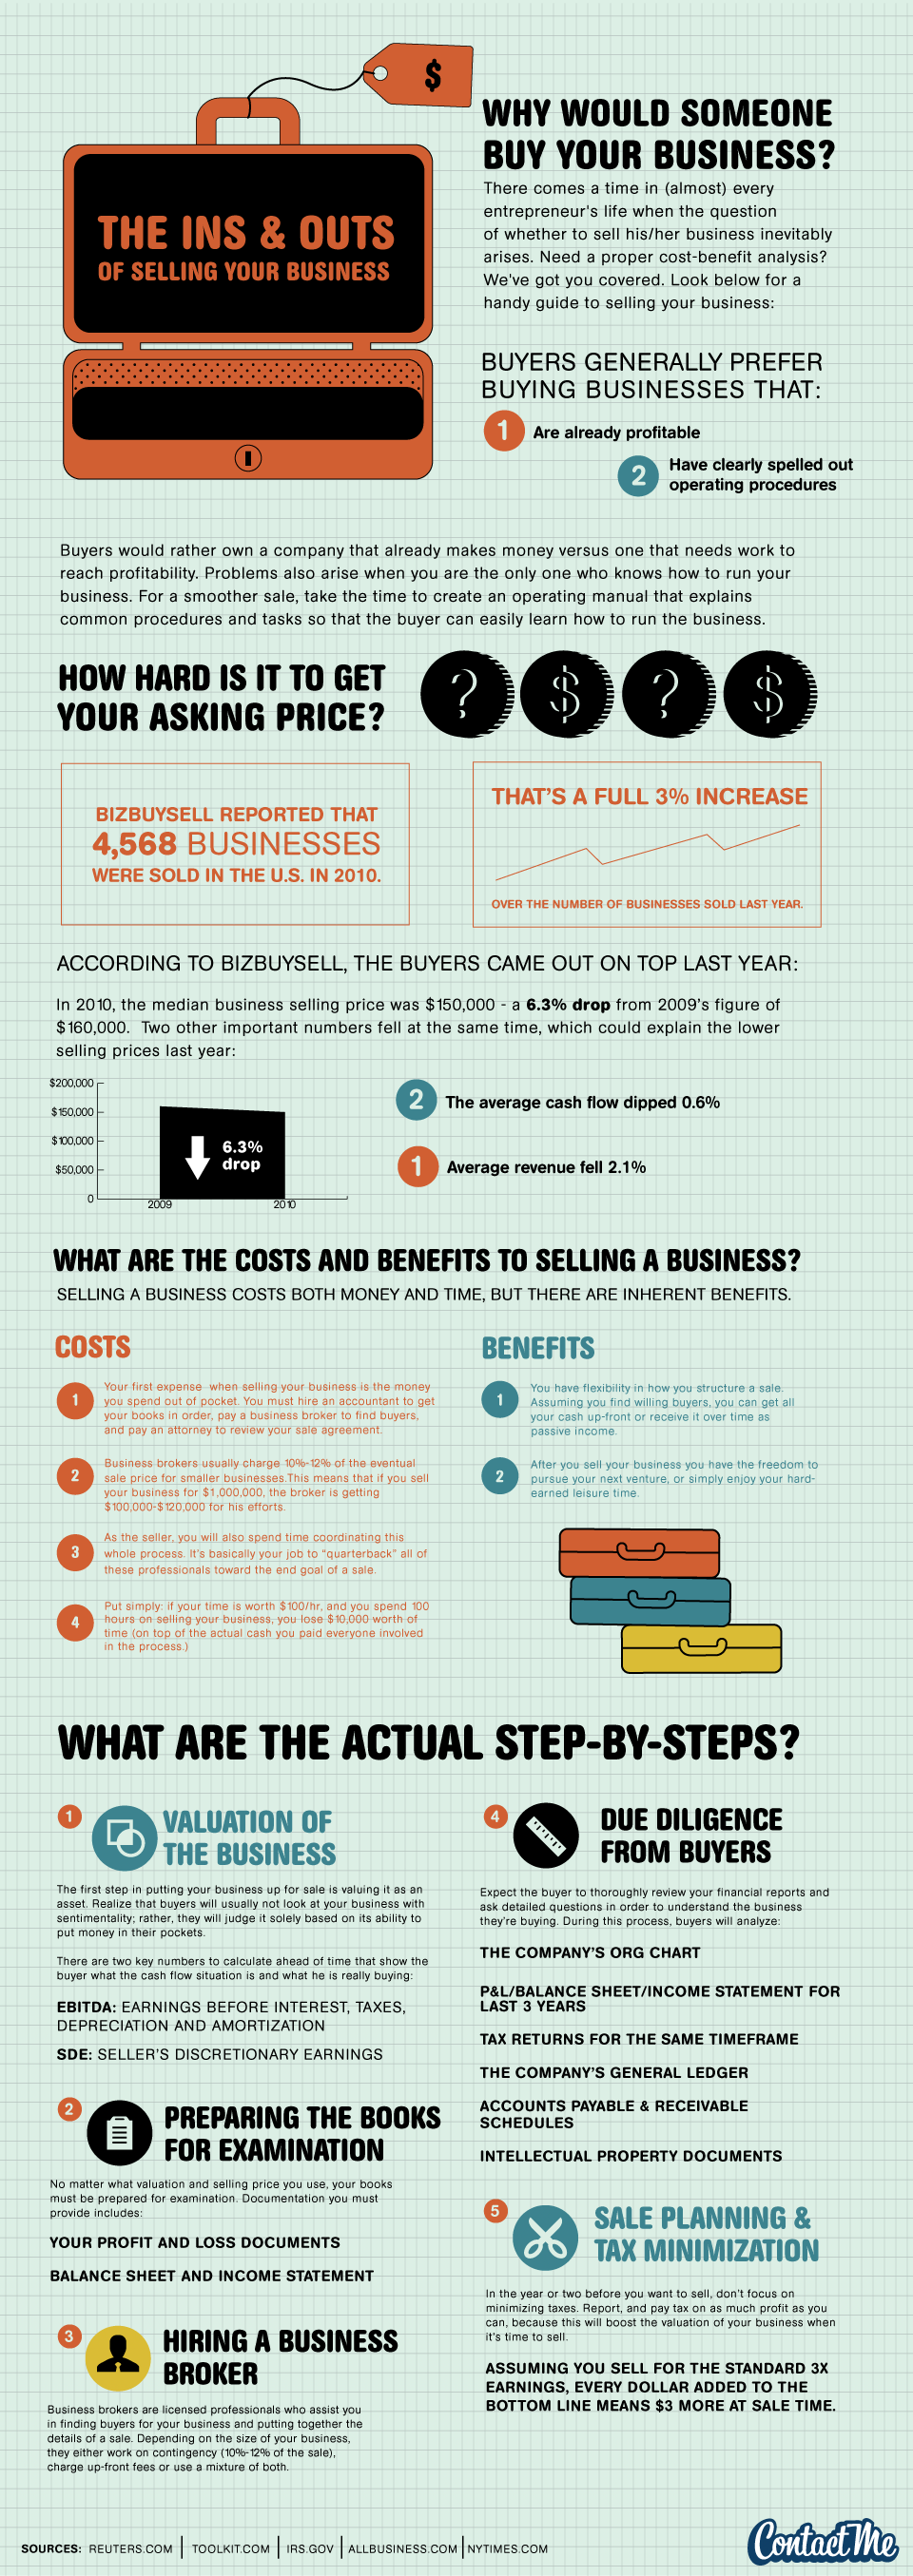 The Ins and Outs of Selling Your Business